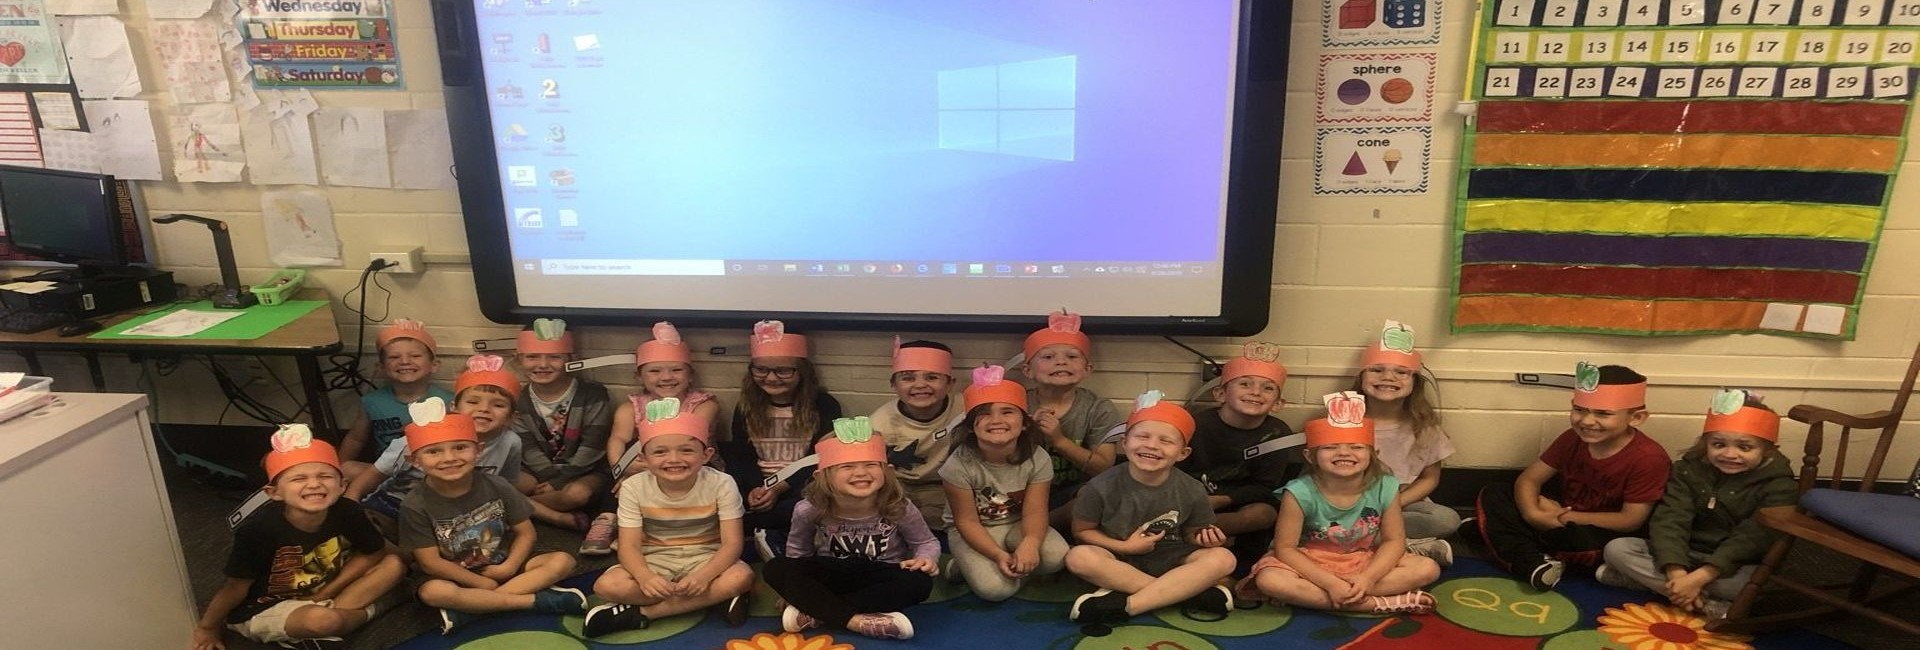 Mrs. Bucher's Class Says Happy Johnny Appleseed Day